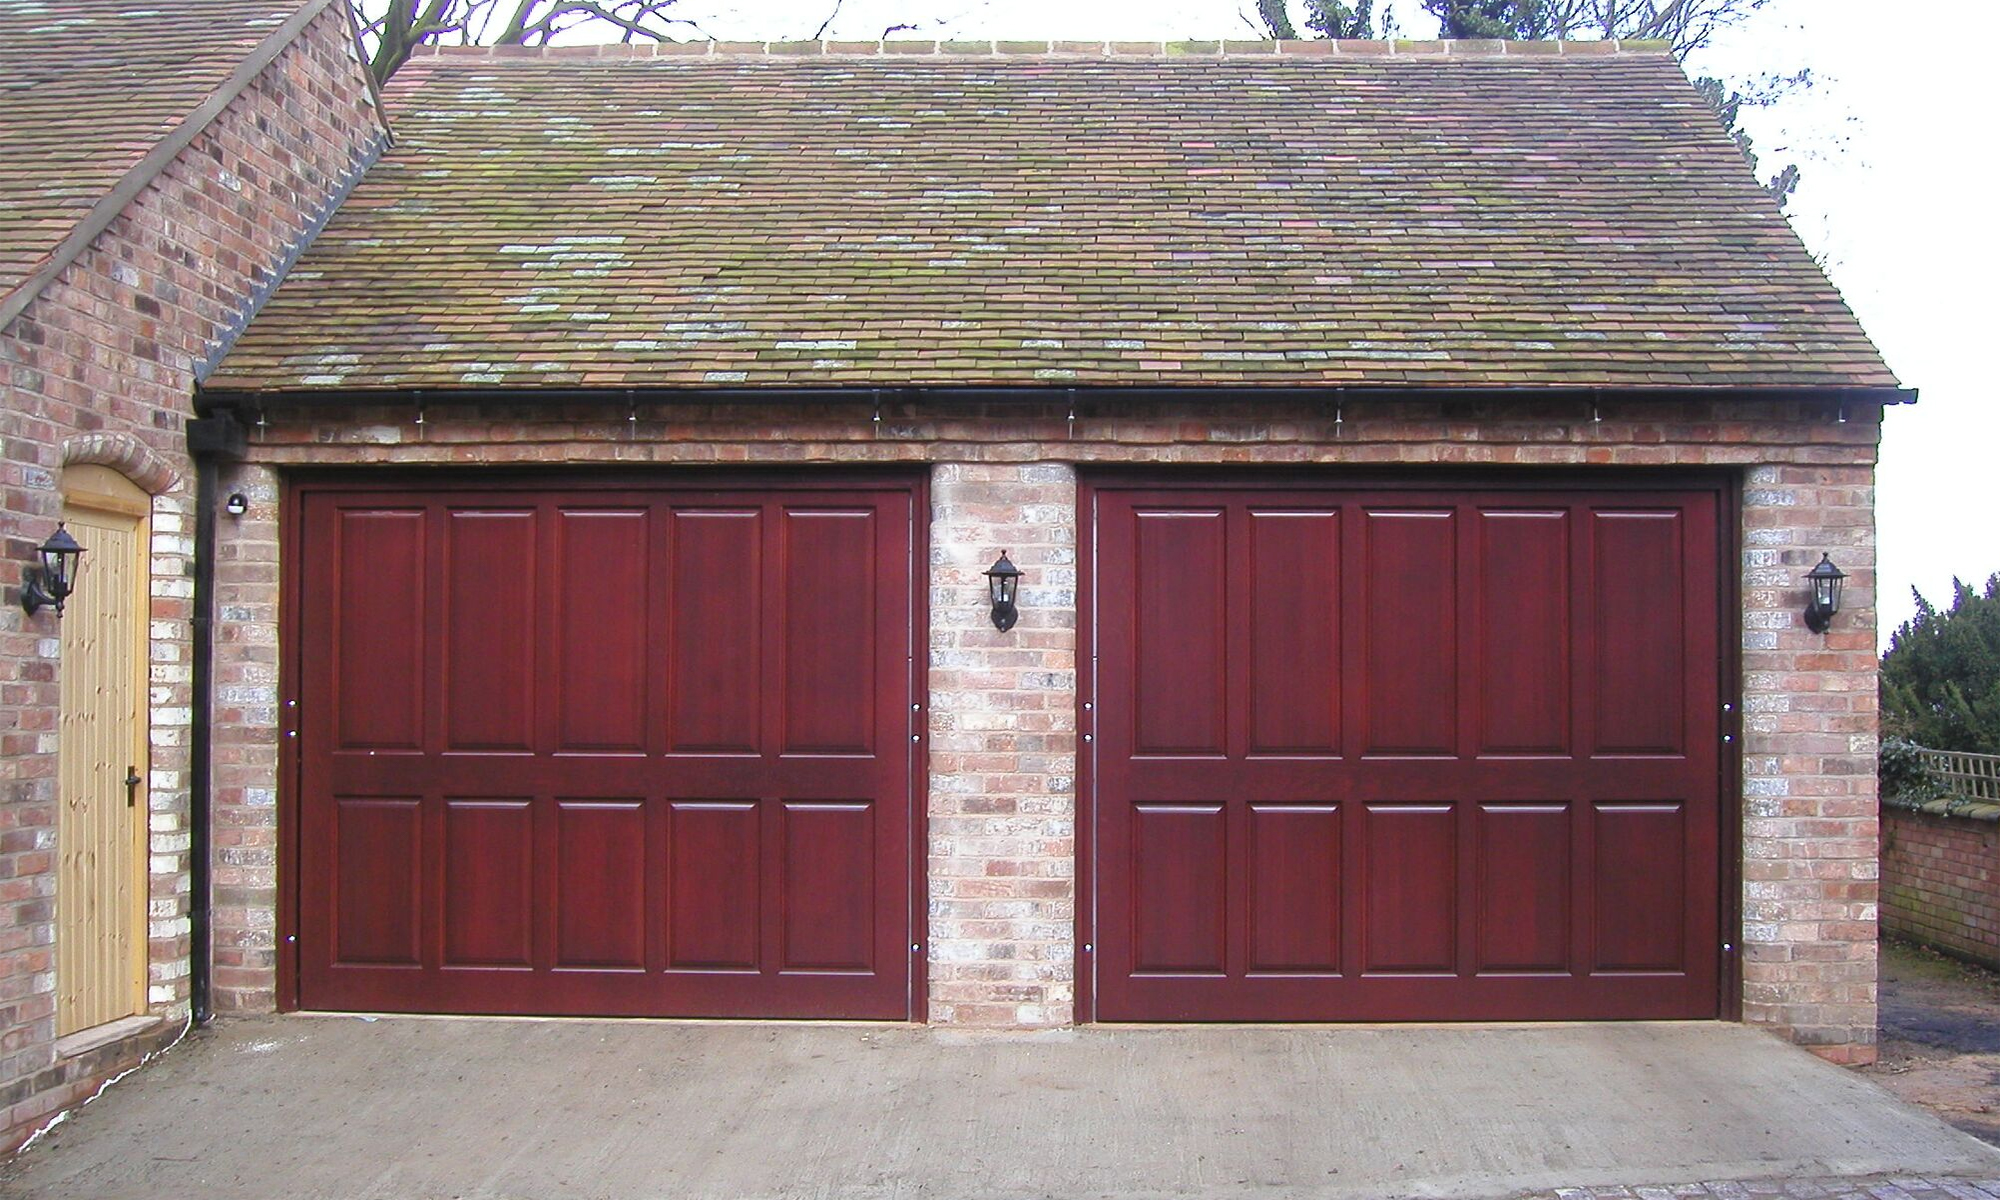 useful opening rowley with doors index arundel birmingham style industrial domestic garage blue ltd access centre door